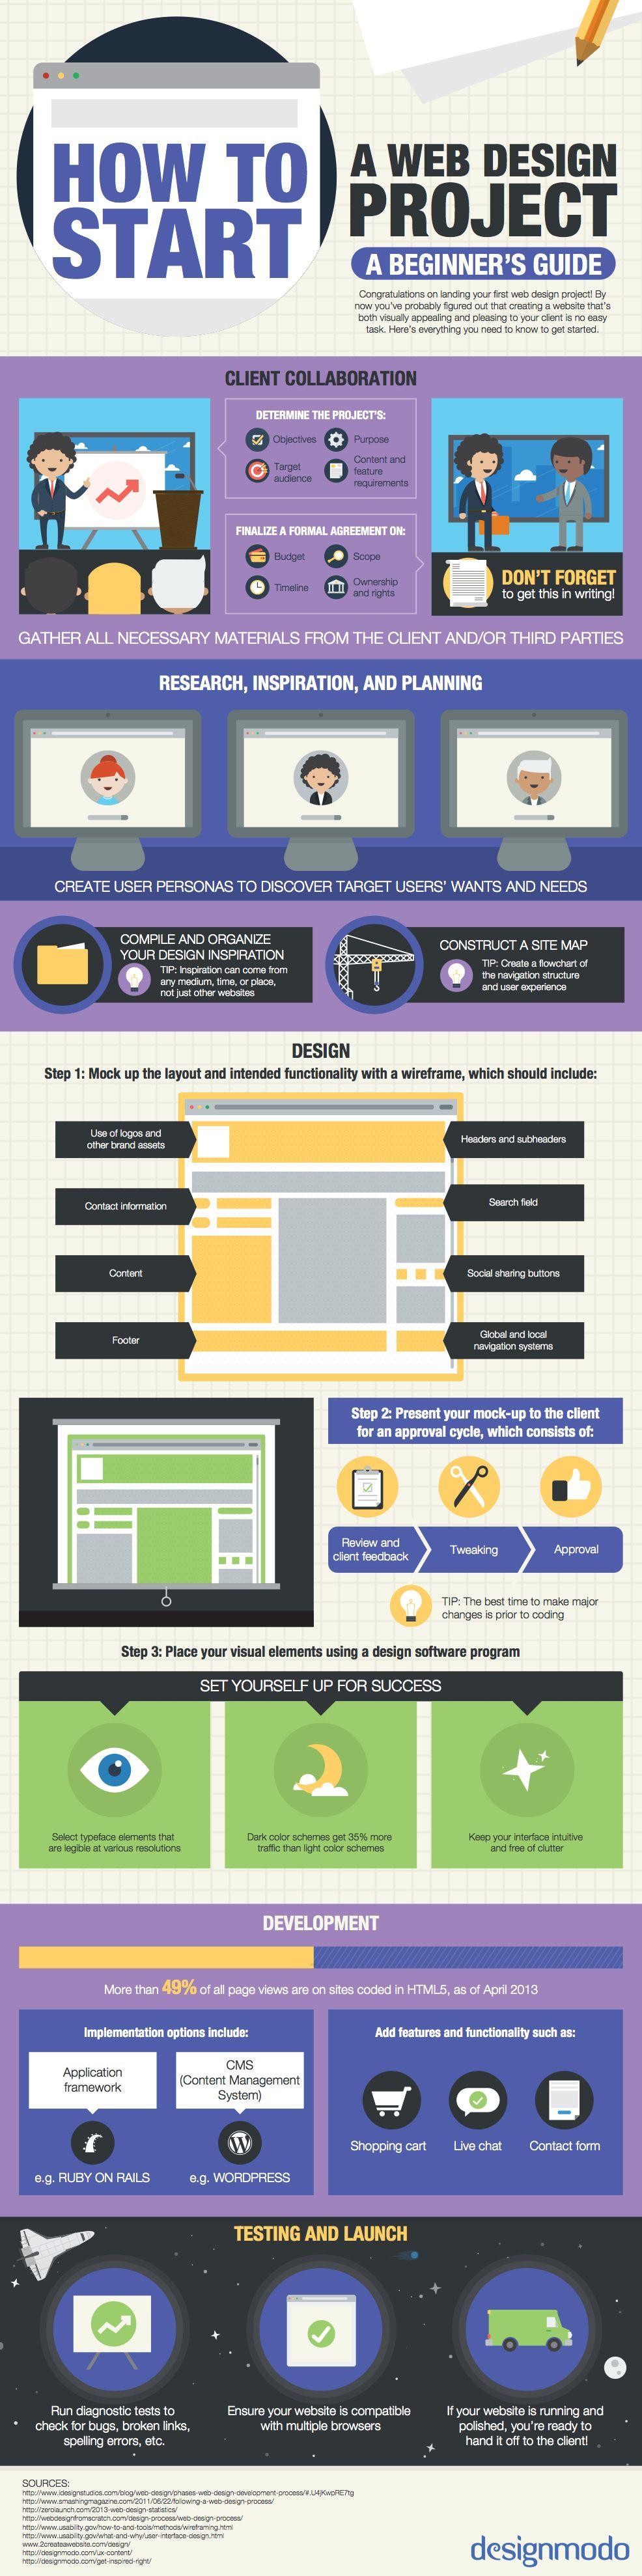 Planning A Website A Simple Guide To Get You Started Web Design Projects Web Design Tips Web Design